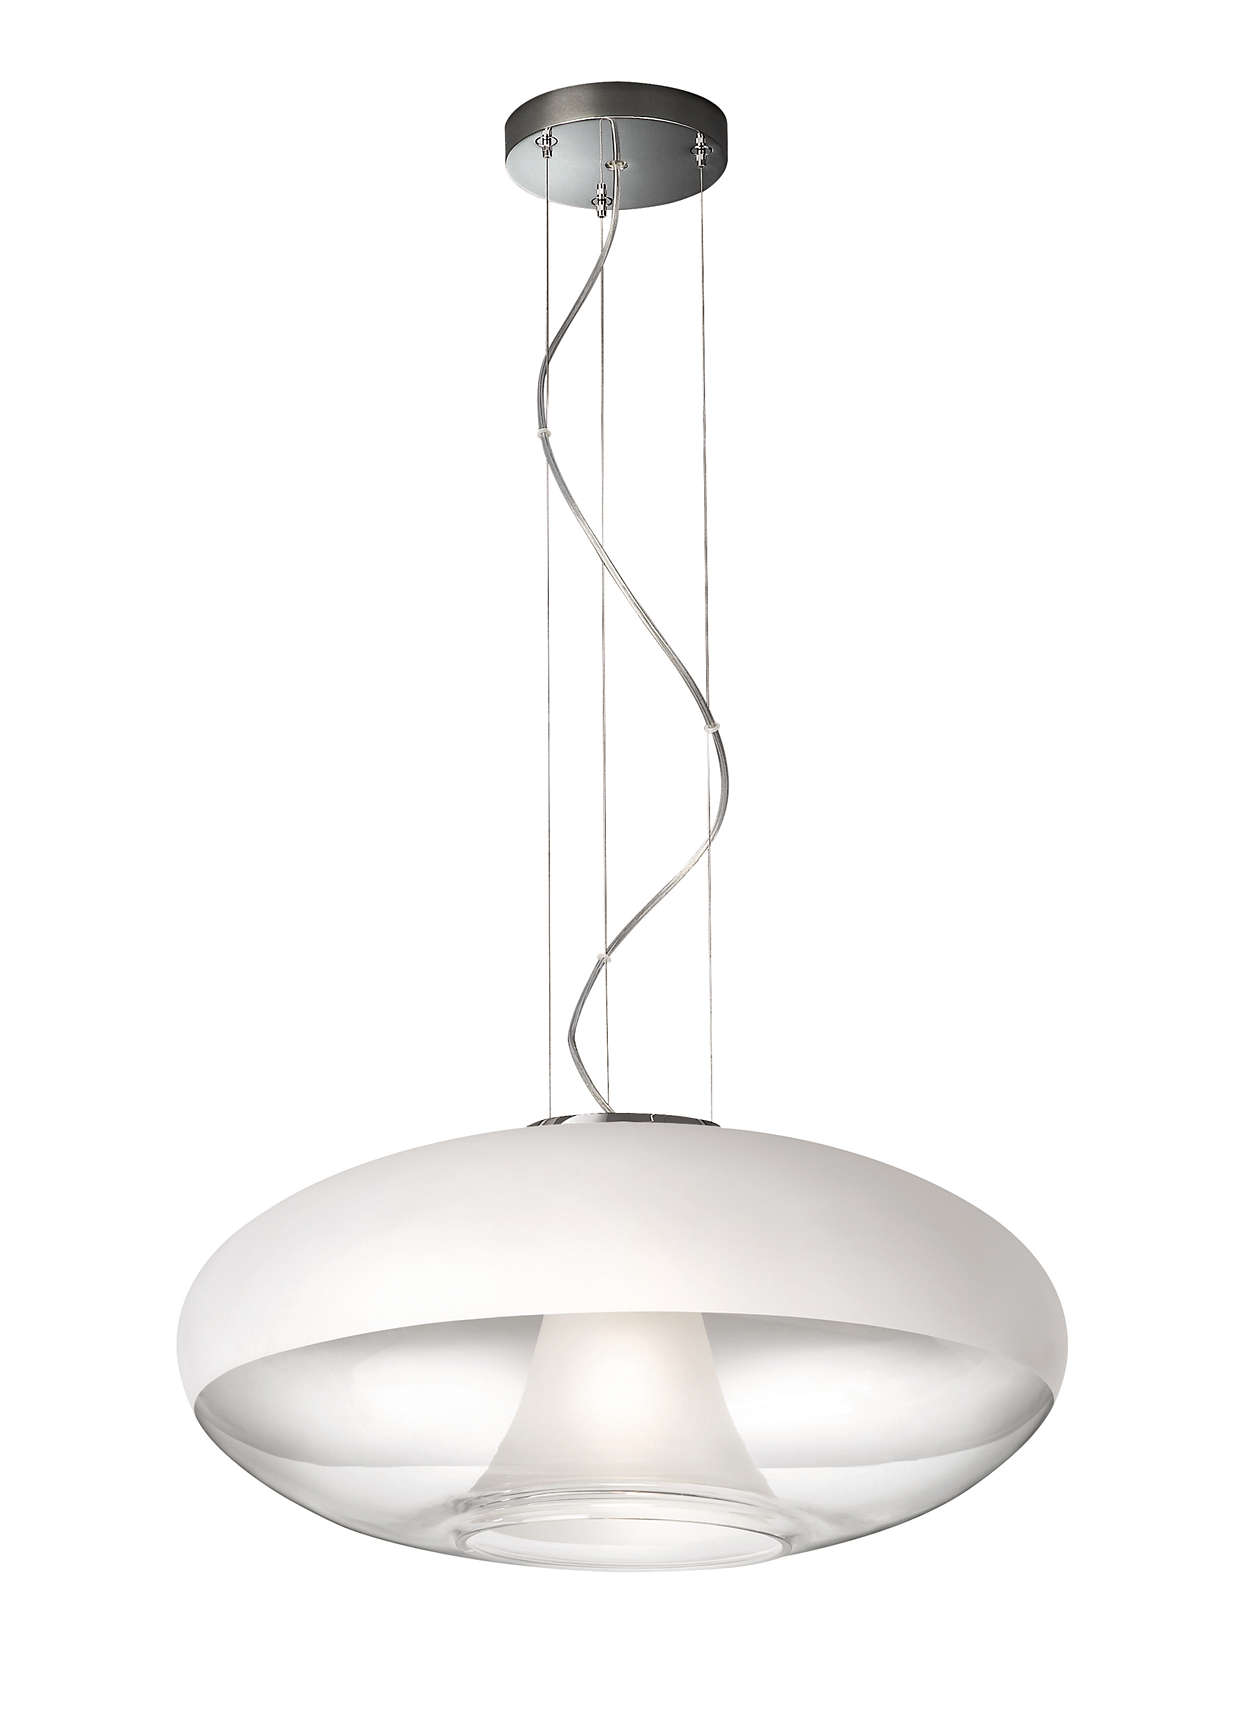 Roomstylers Adisa ceiling light